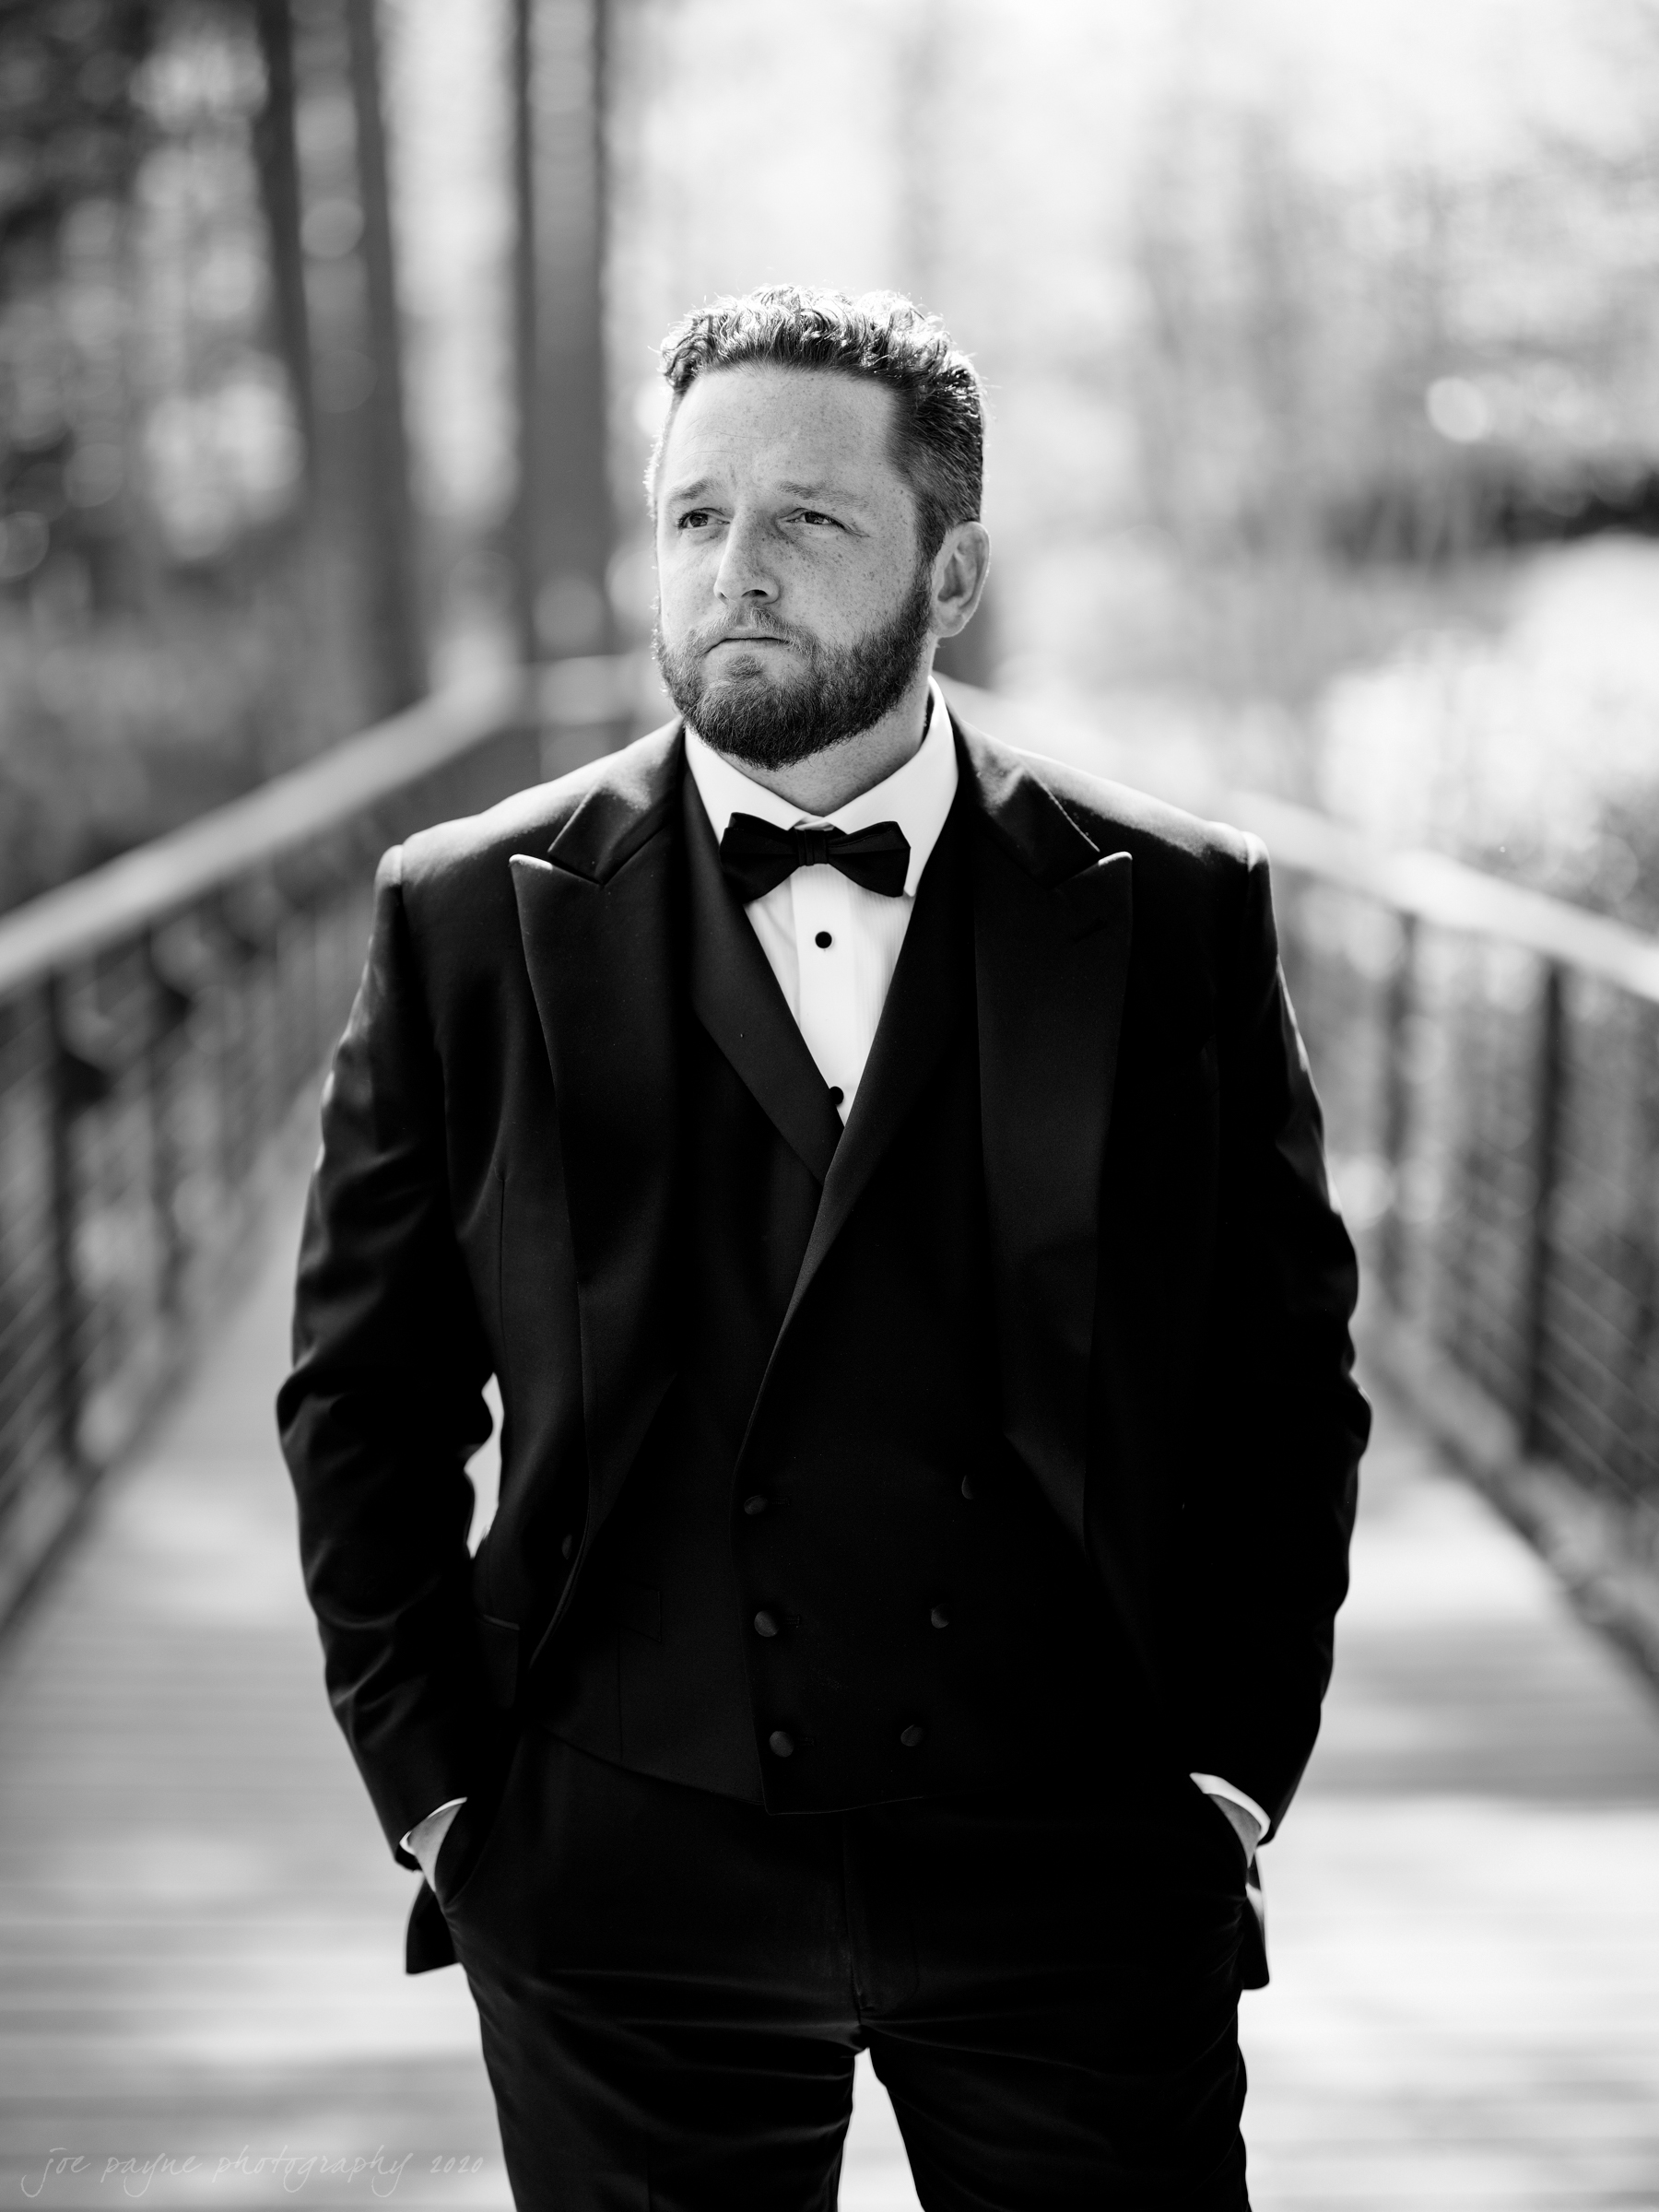 umstead hotel park wedding photography brittany harrison 8